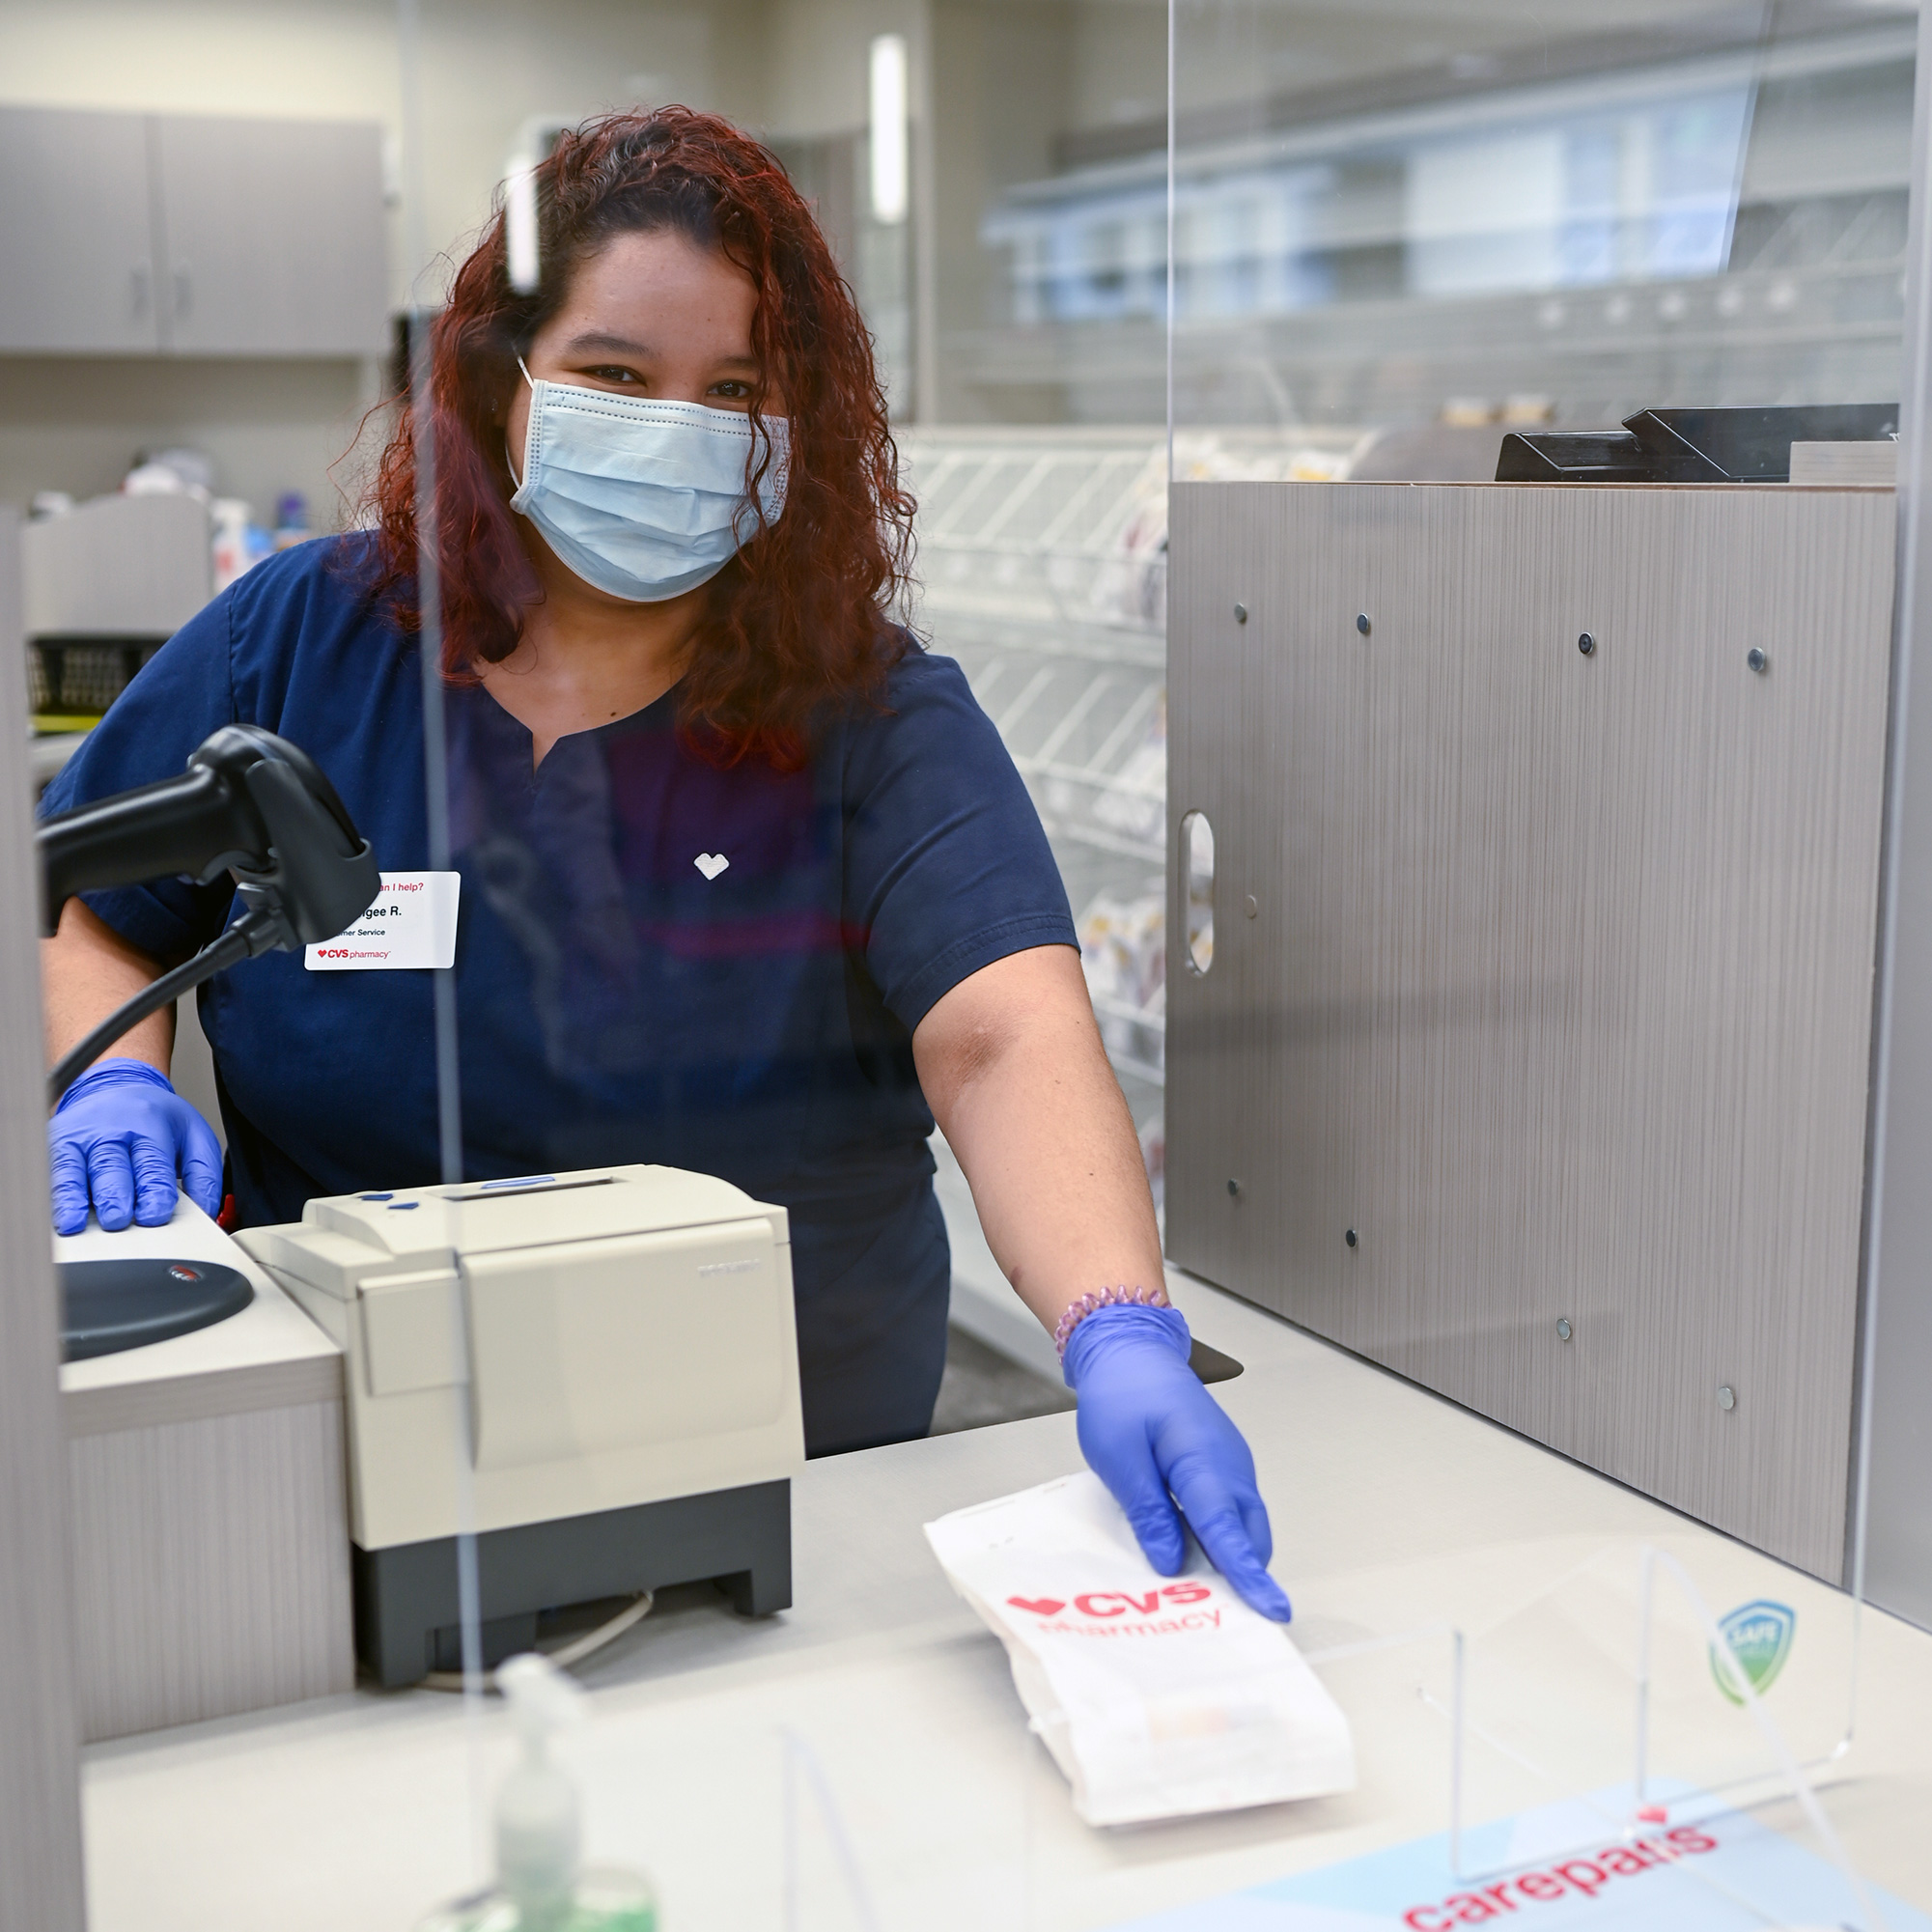 A CVS Pharmacy technician prepares prescriptions while wearing personal protective equipment (PPE) behind a plexiglass screen.